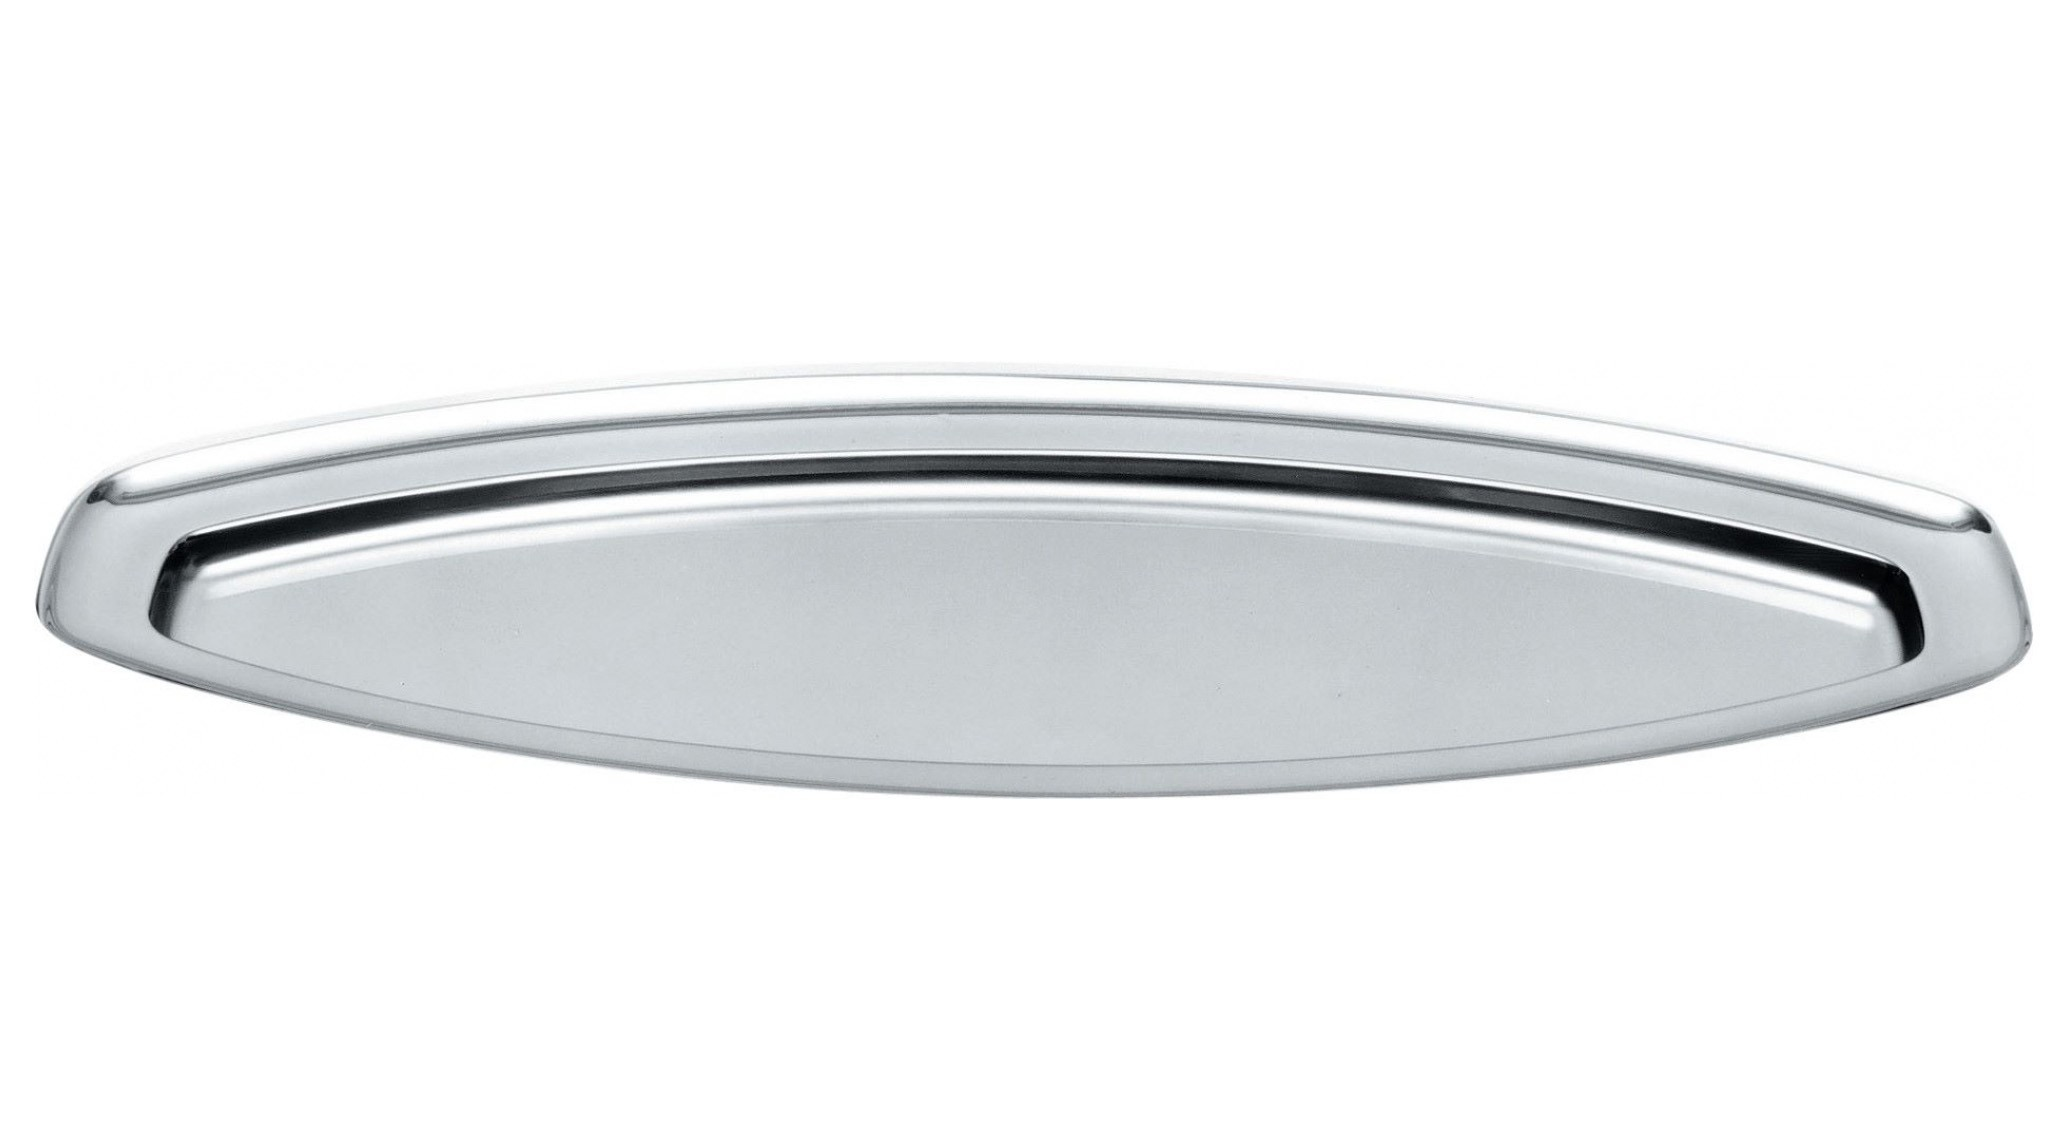 Alessi 127 Fish Plate